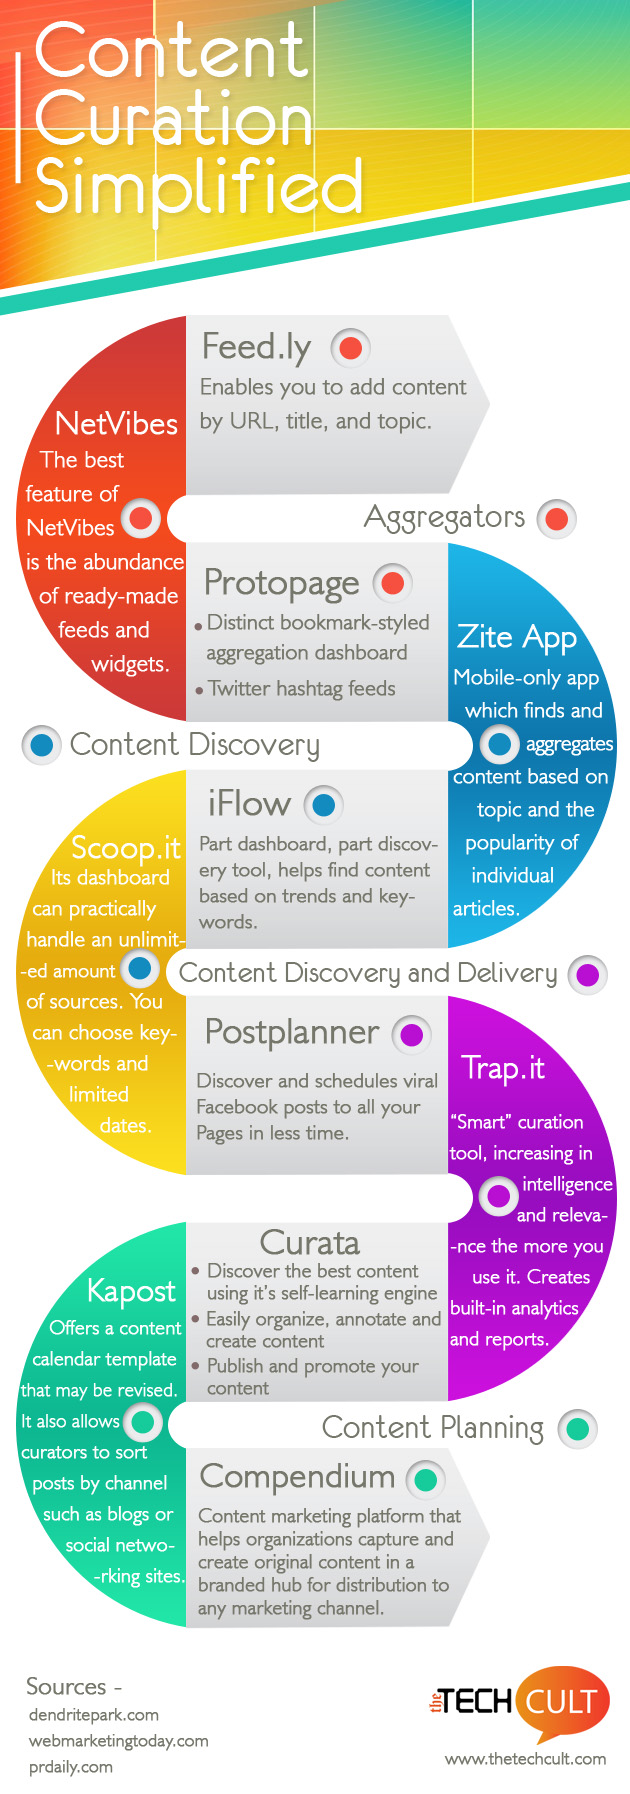 Content Curation Simplified: An #Infographic - #contentmarketing